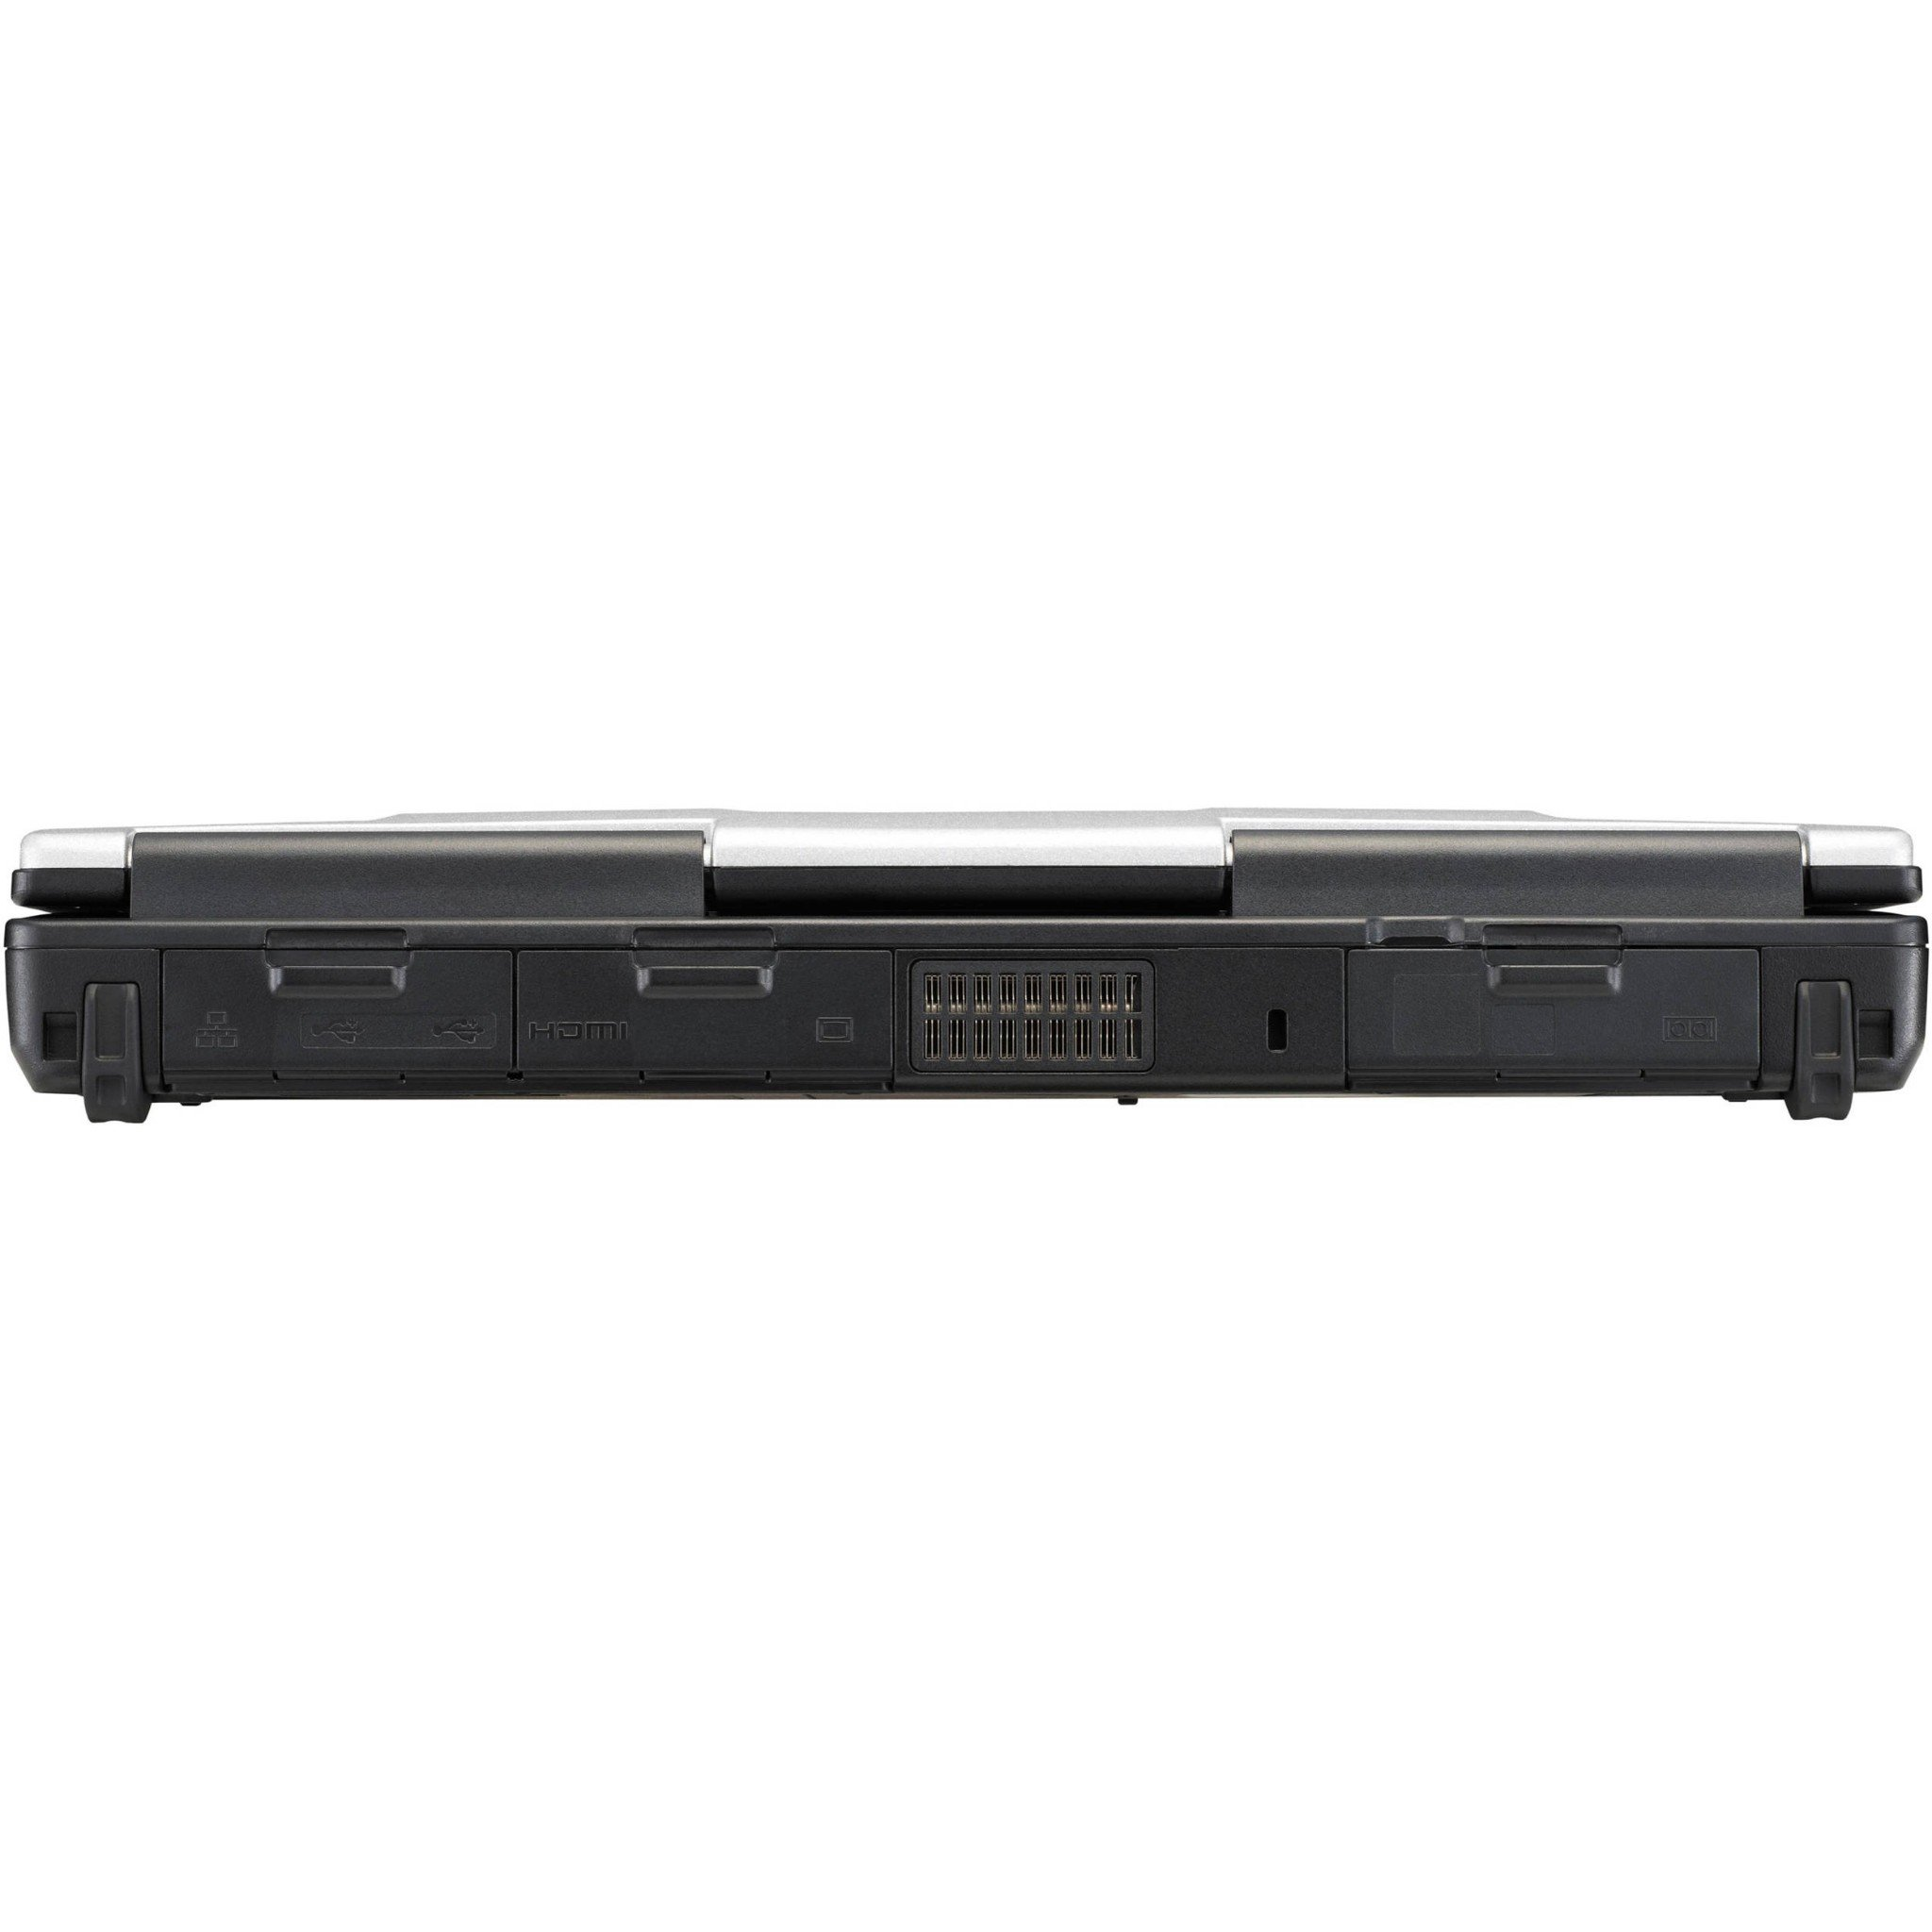 panasonic-toughbook-cf-53-mk-3